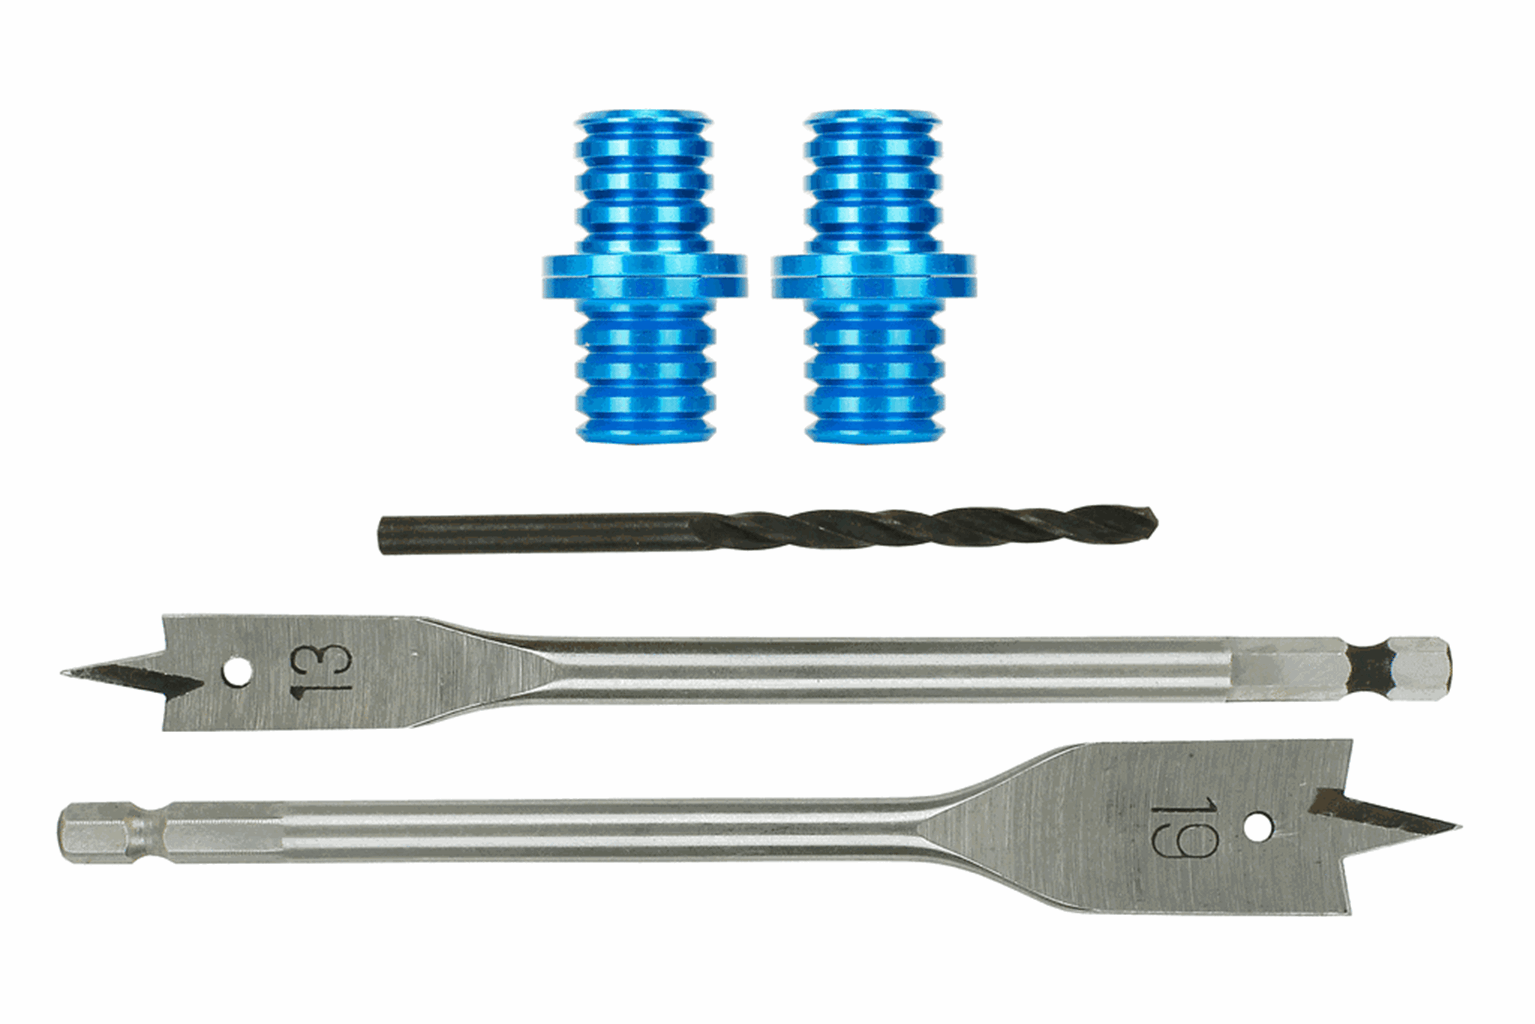 Baseboard Dowels (2) with Spade Drill Bits